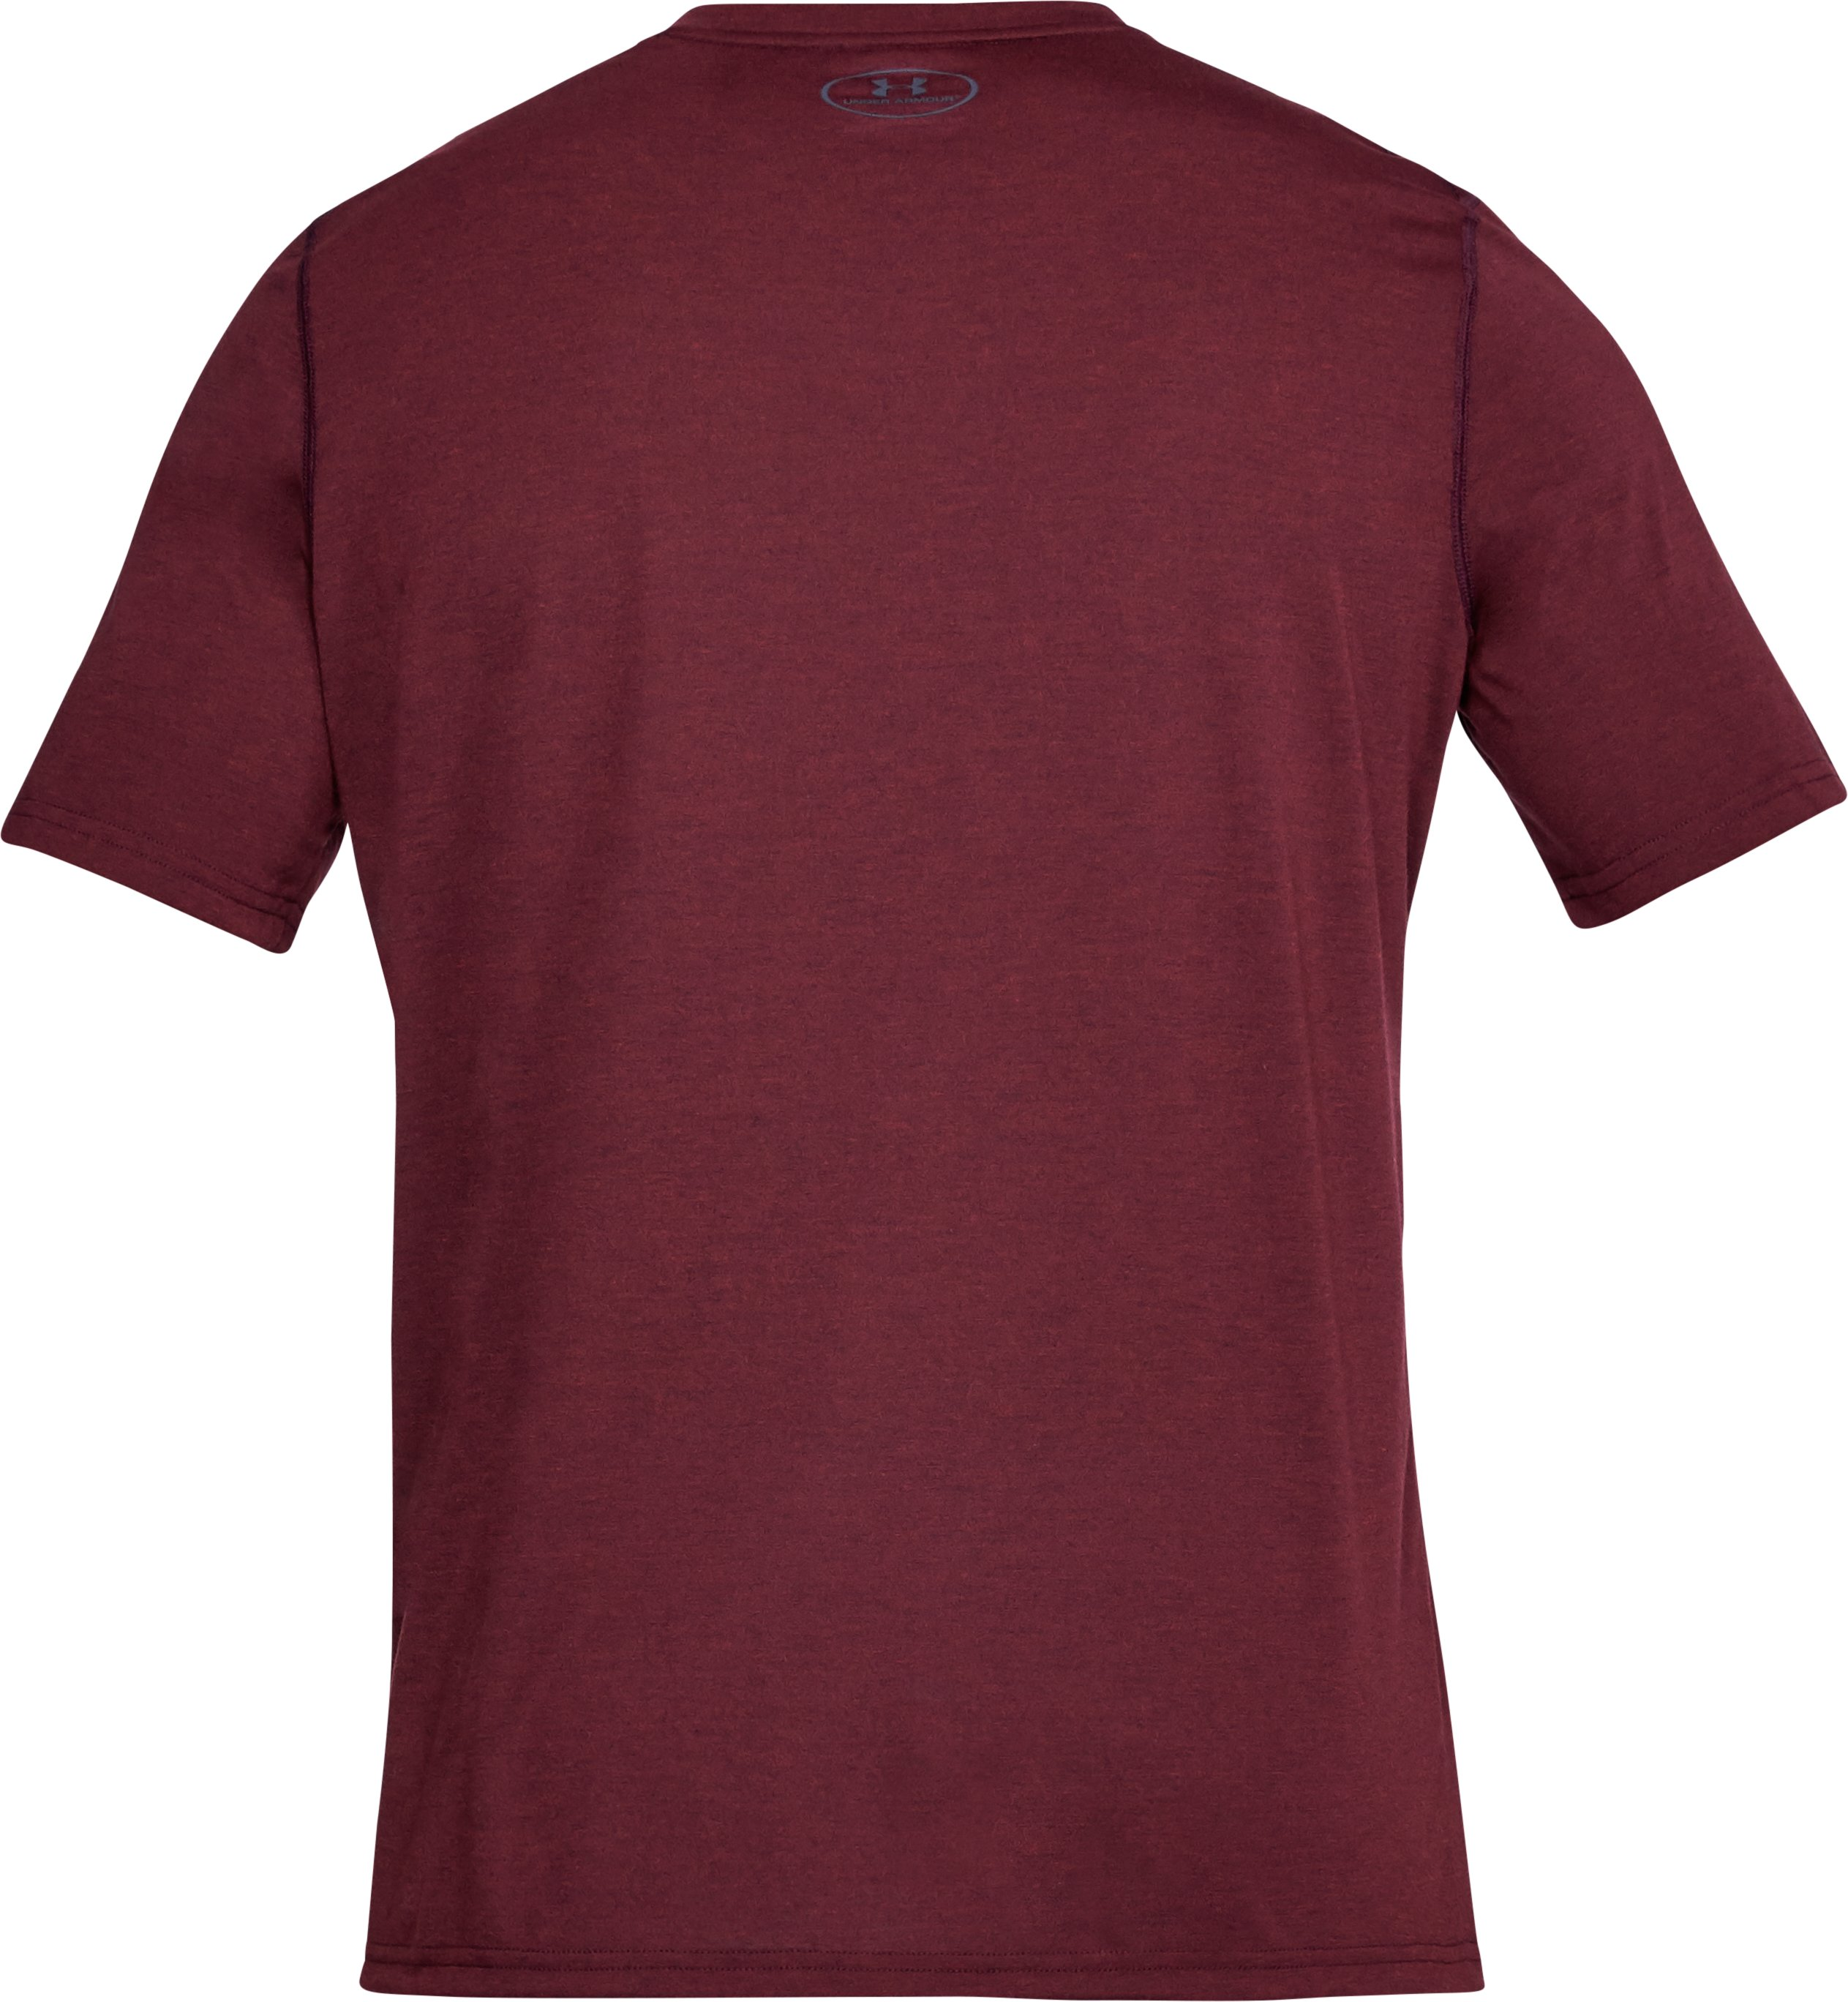 Men's UA Threadborne V-Neck T-Shirt, RAISIN RED, undefined